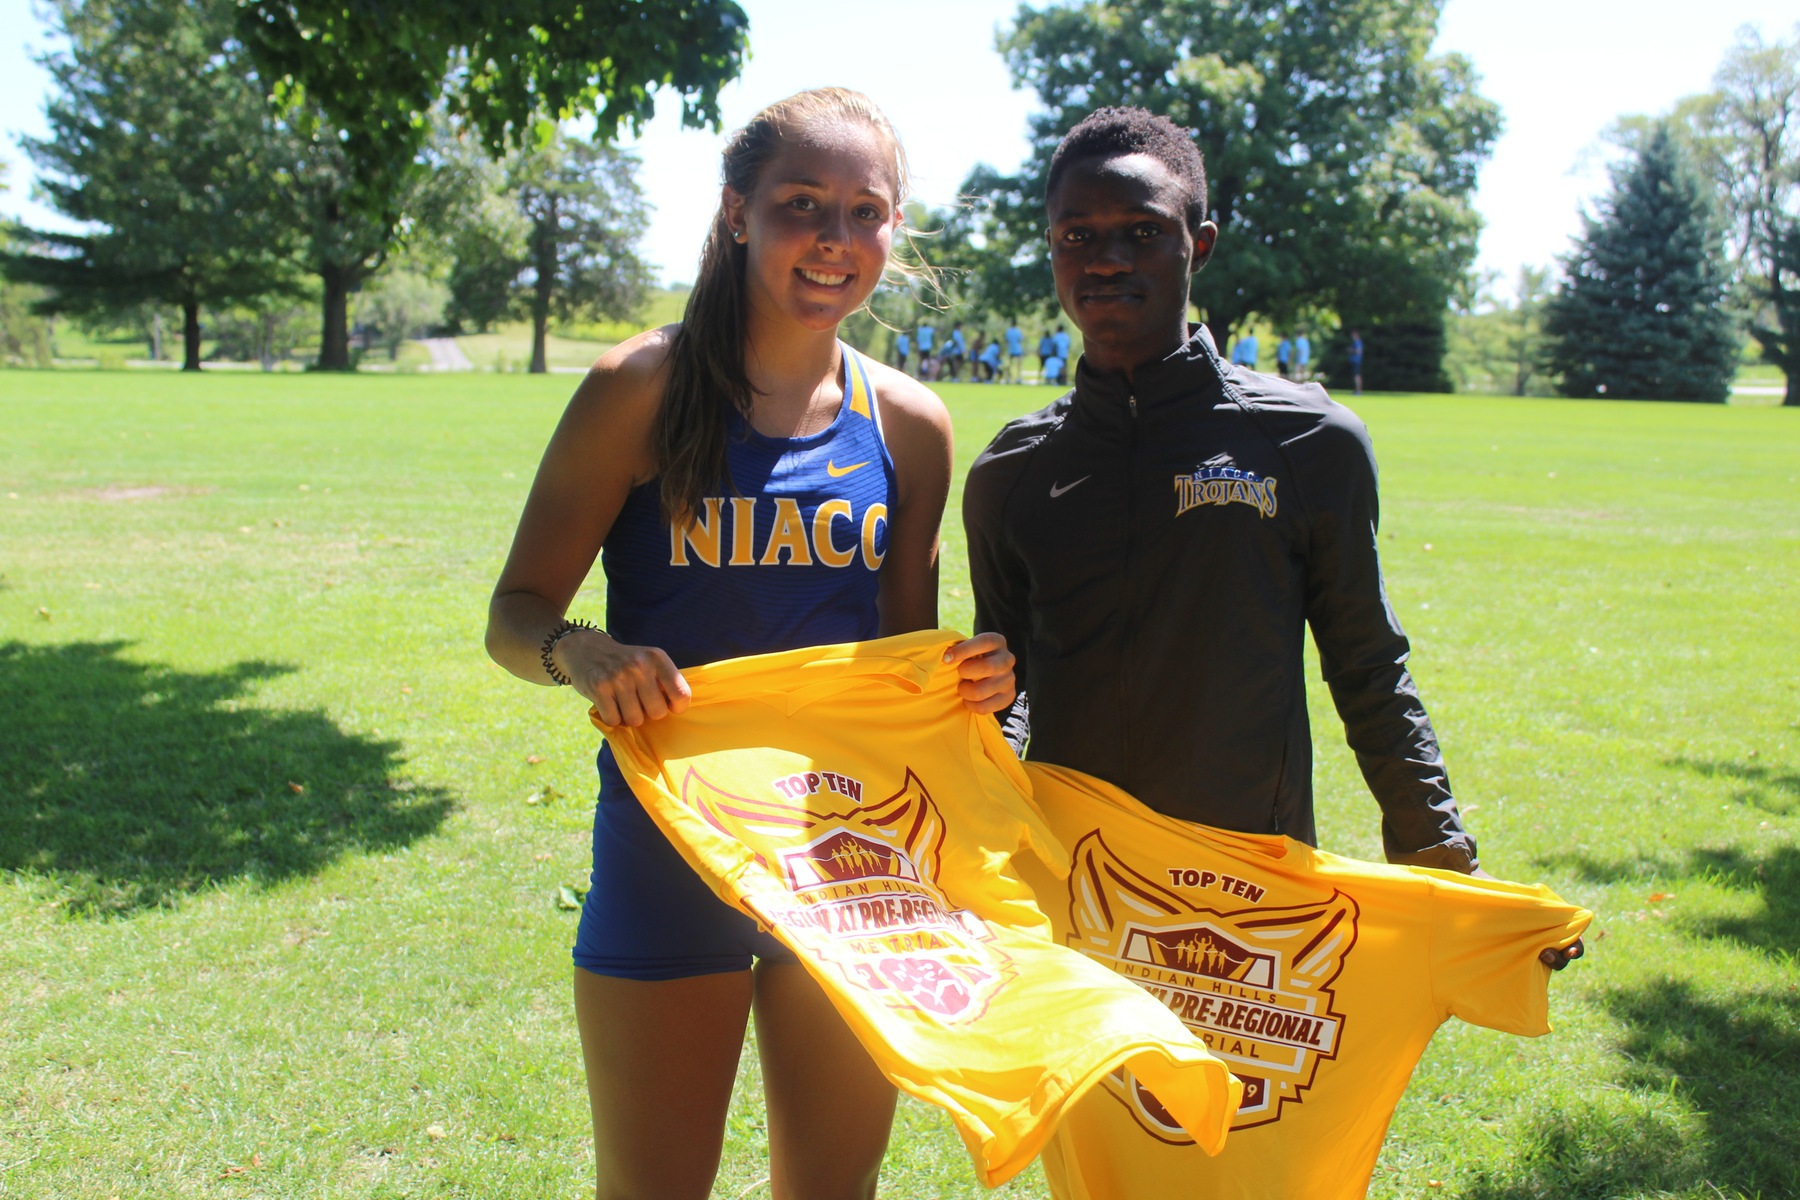 NIACC's Whitney Martin and Janvier Irakoze both placed in the top 10 at Friday's regional time trial in Ottumwa.